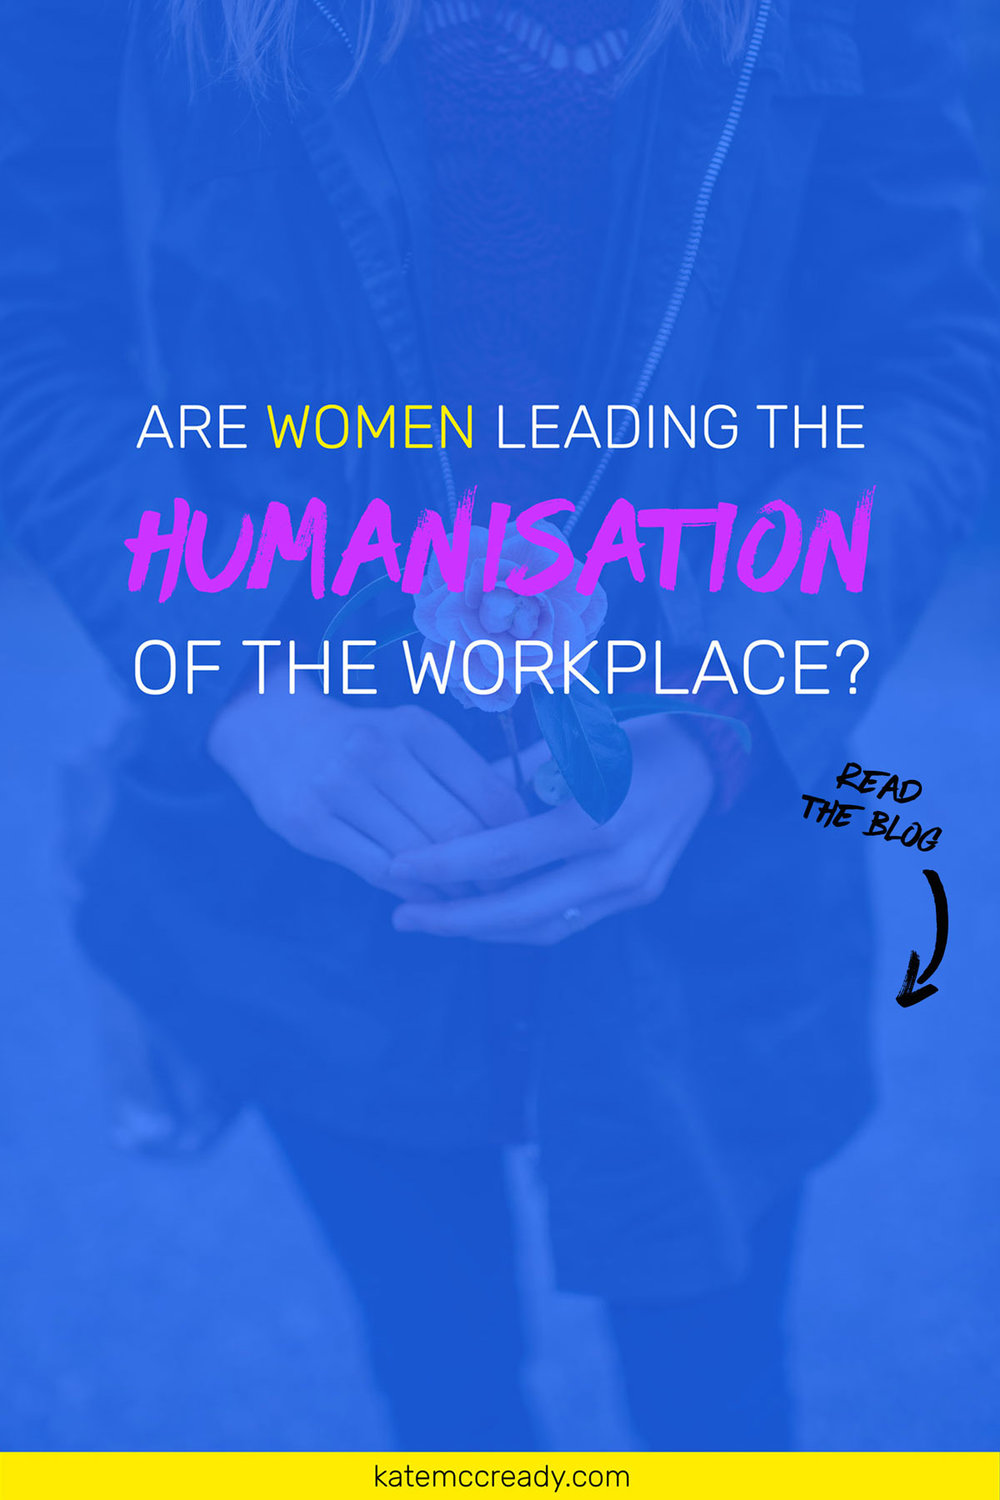 women leading humanisation workplace